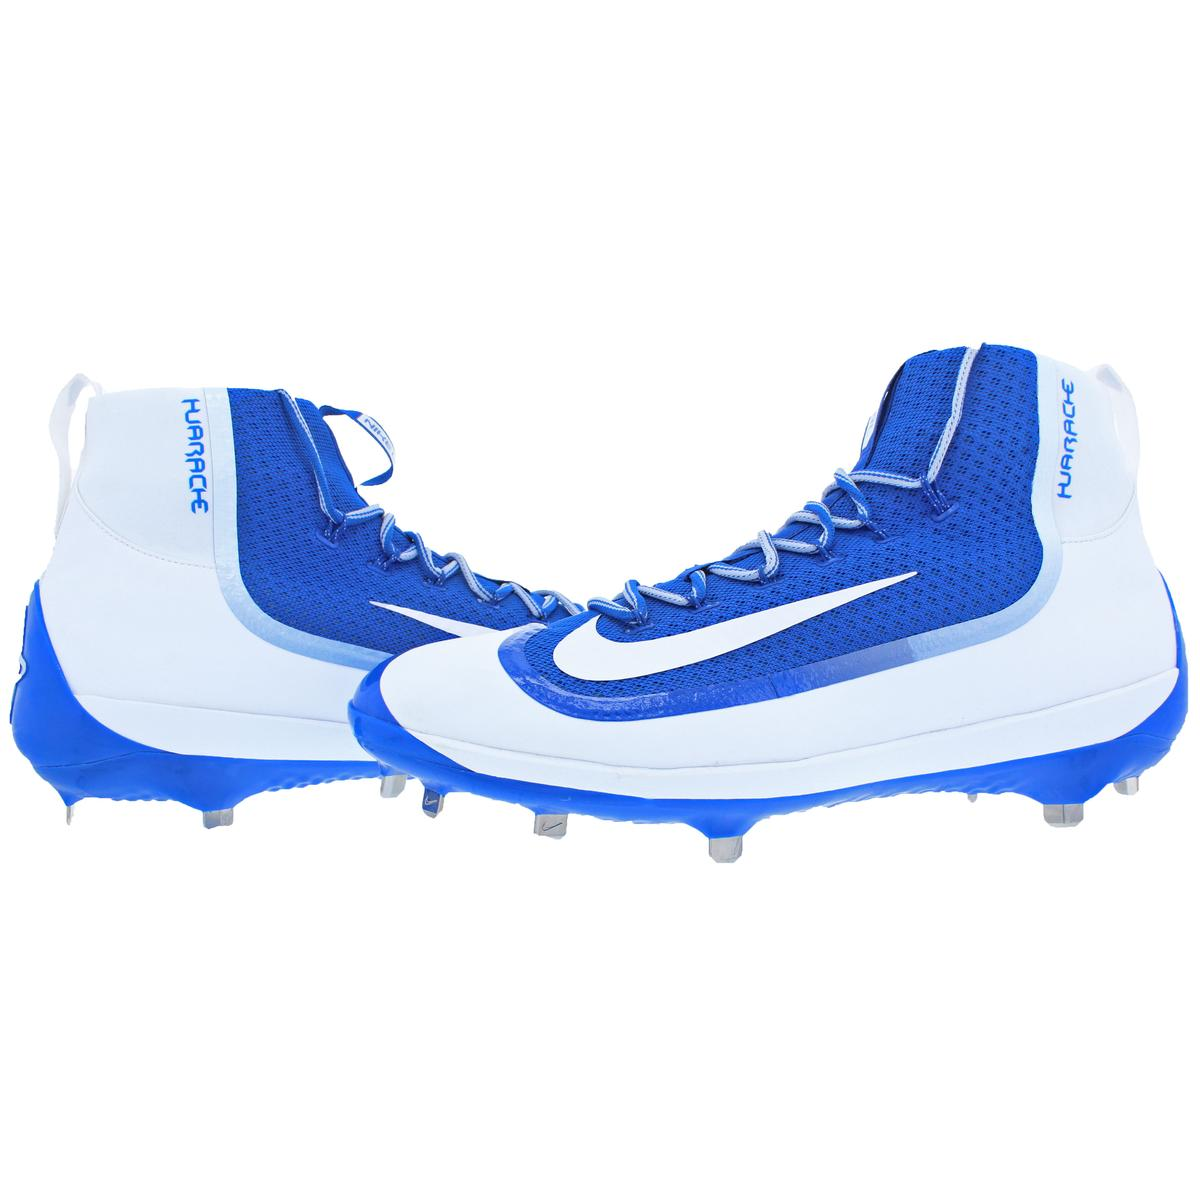 Nike  Uomo Mid Air Huarache 2kFilth Elite Mid Uomo Lightly Padded Cleats Schuhes BHFO 0791 f78e59